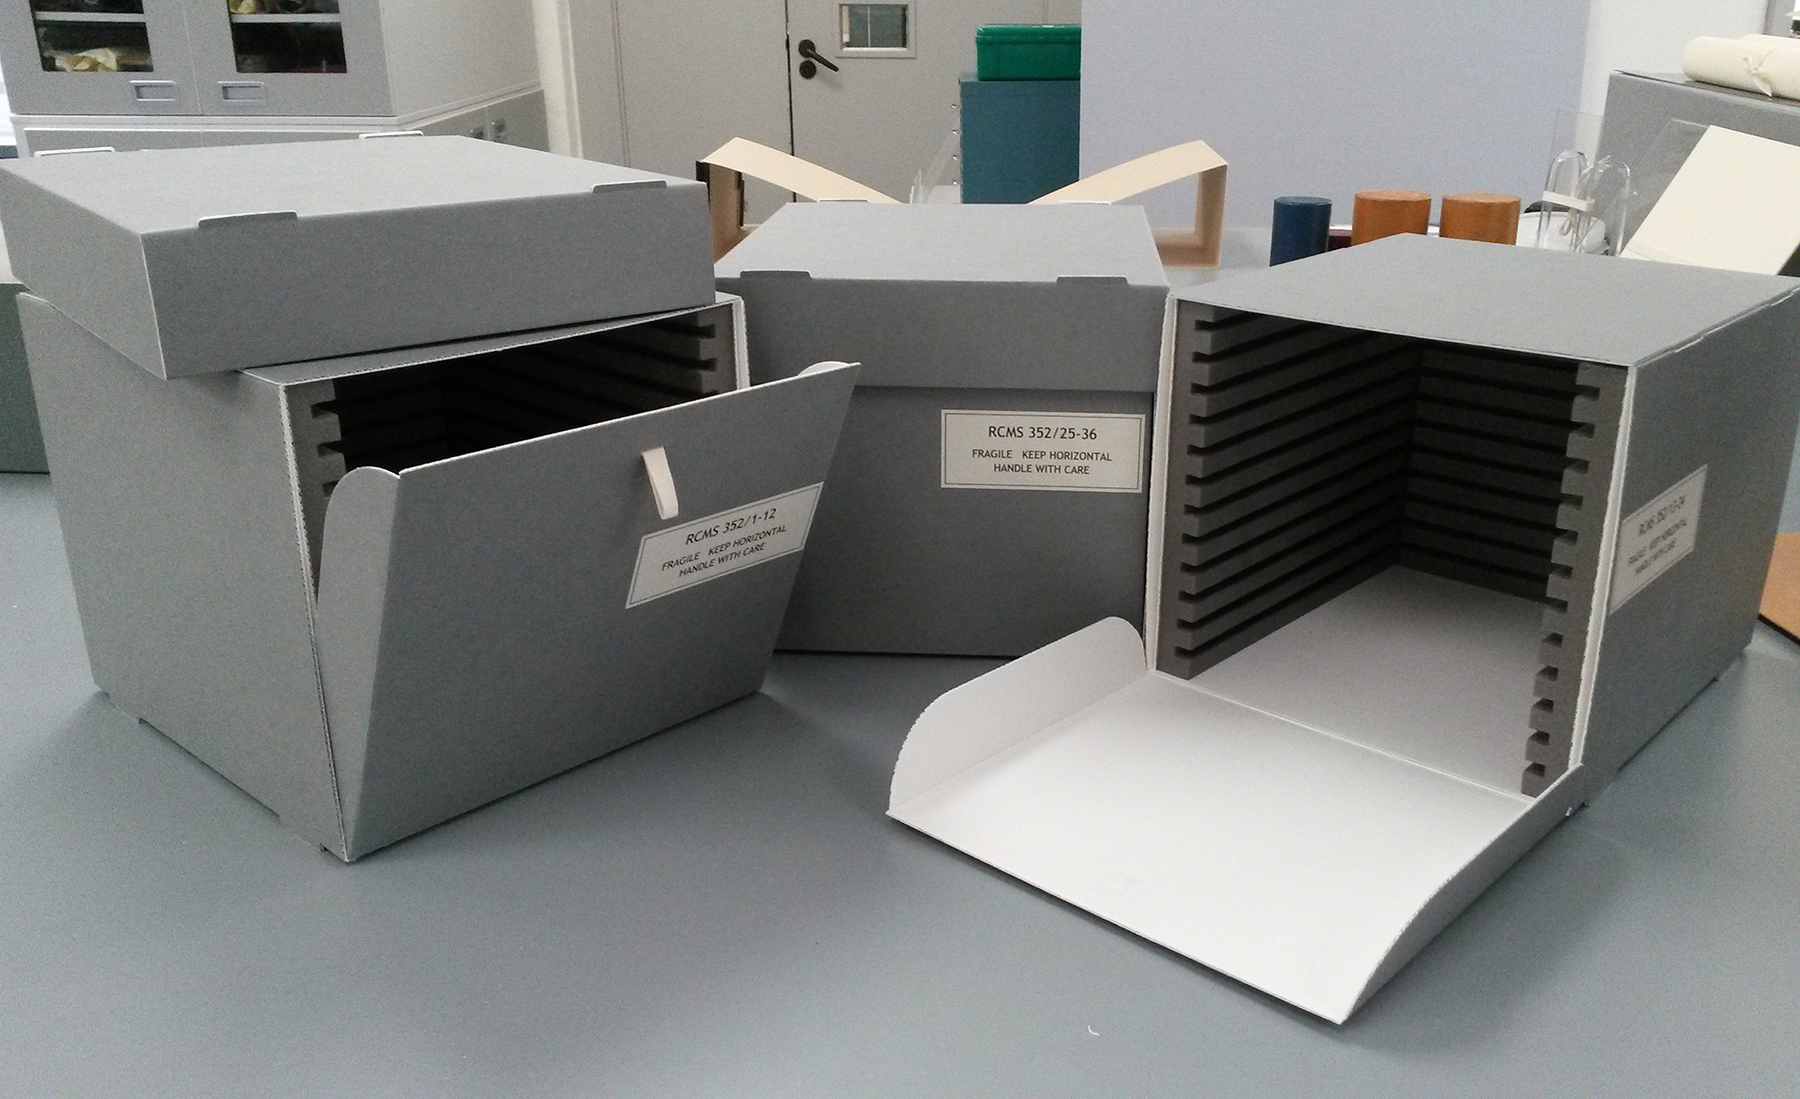 The three boxes with lids, drop front access and plastazote channels